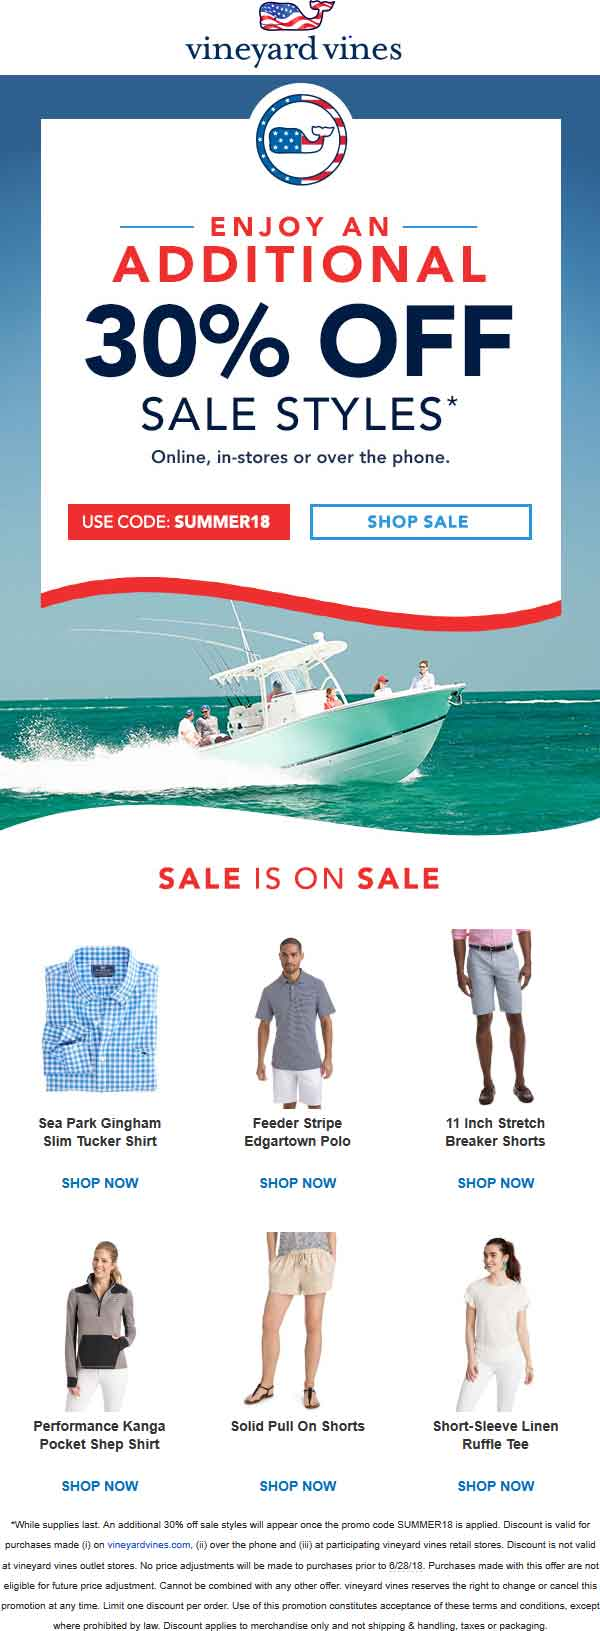 VineyardVines.com Promo Coupon Extra 30% off sale items at Vineyard Vines, or online via promo code SUMMER18